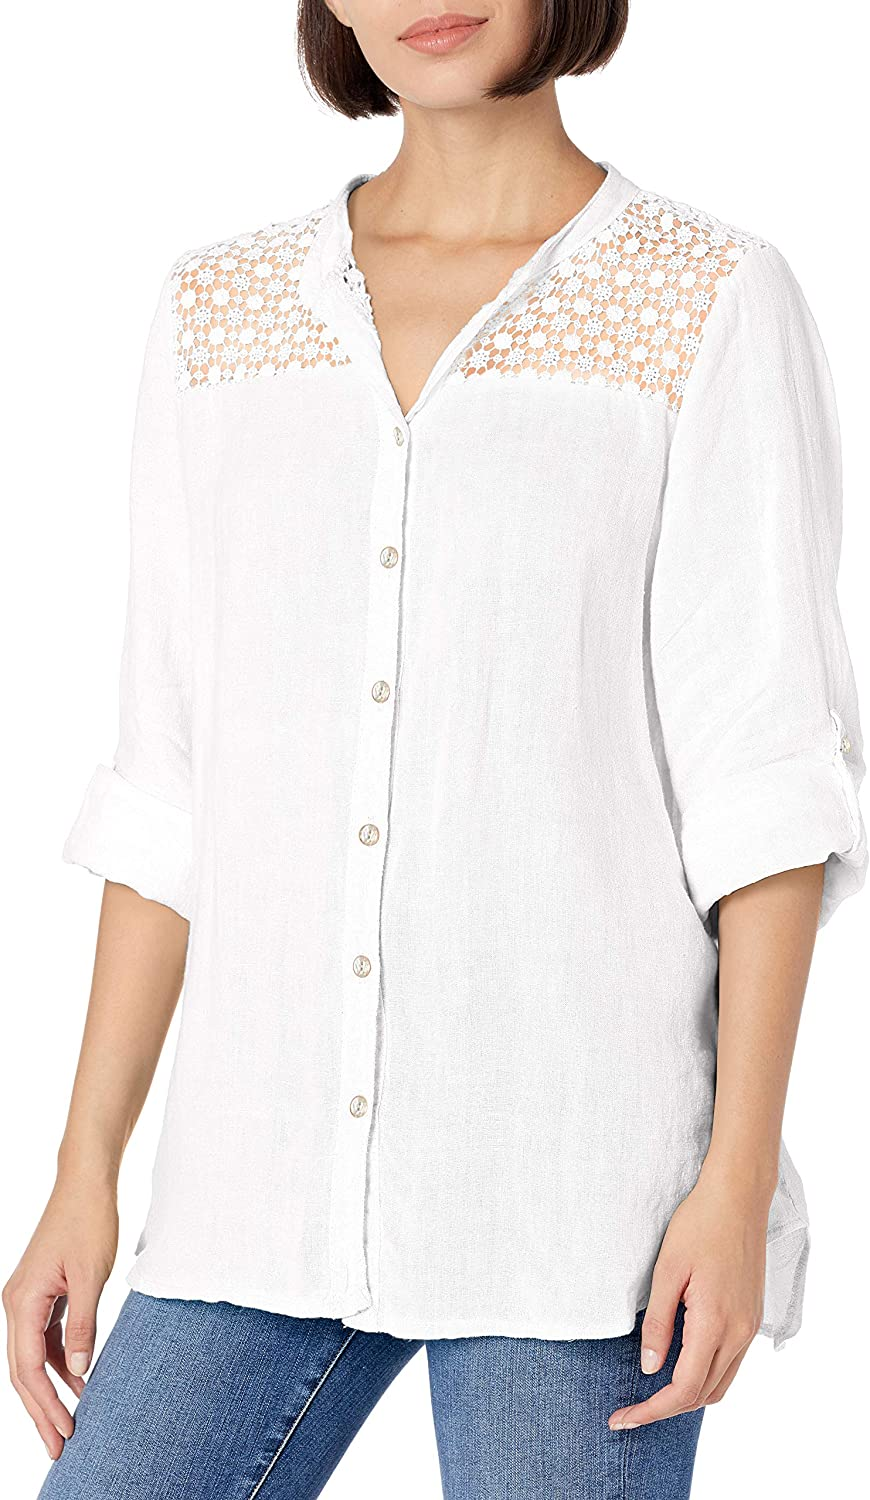 M Made in Italy Women's Button Down Shirt